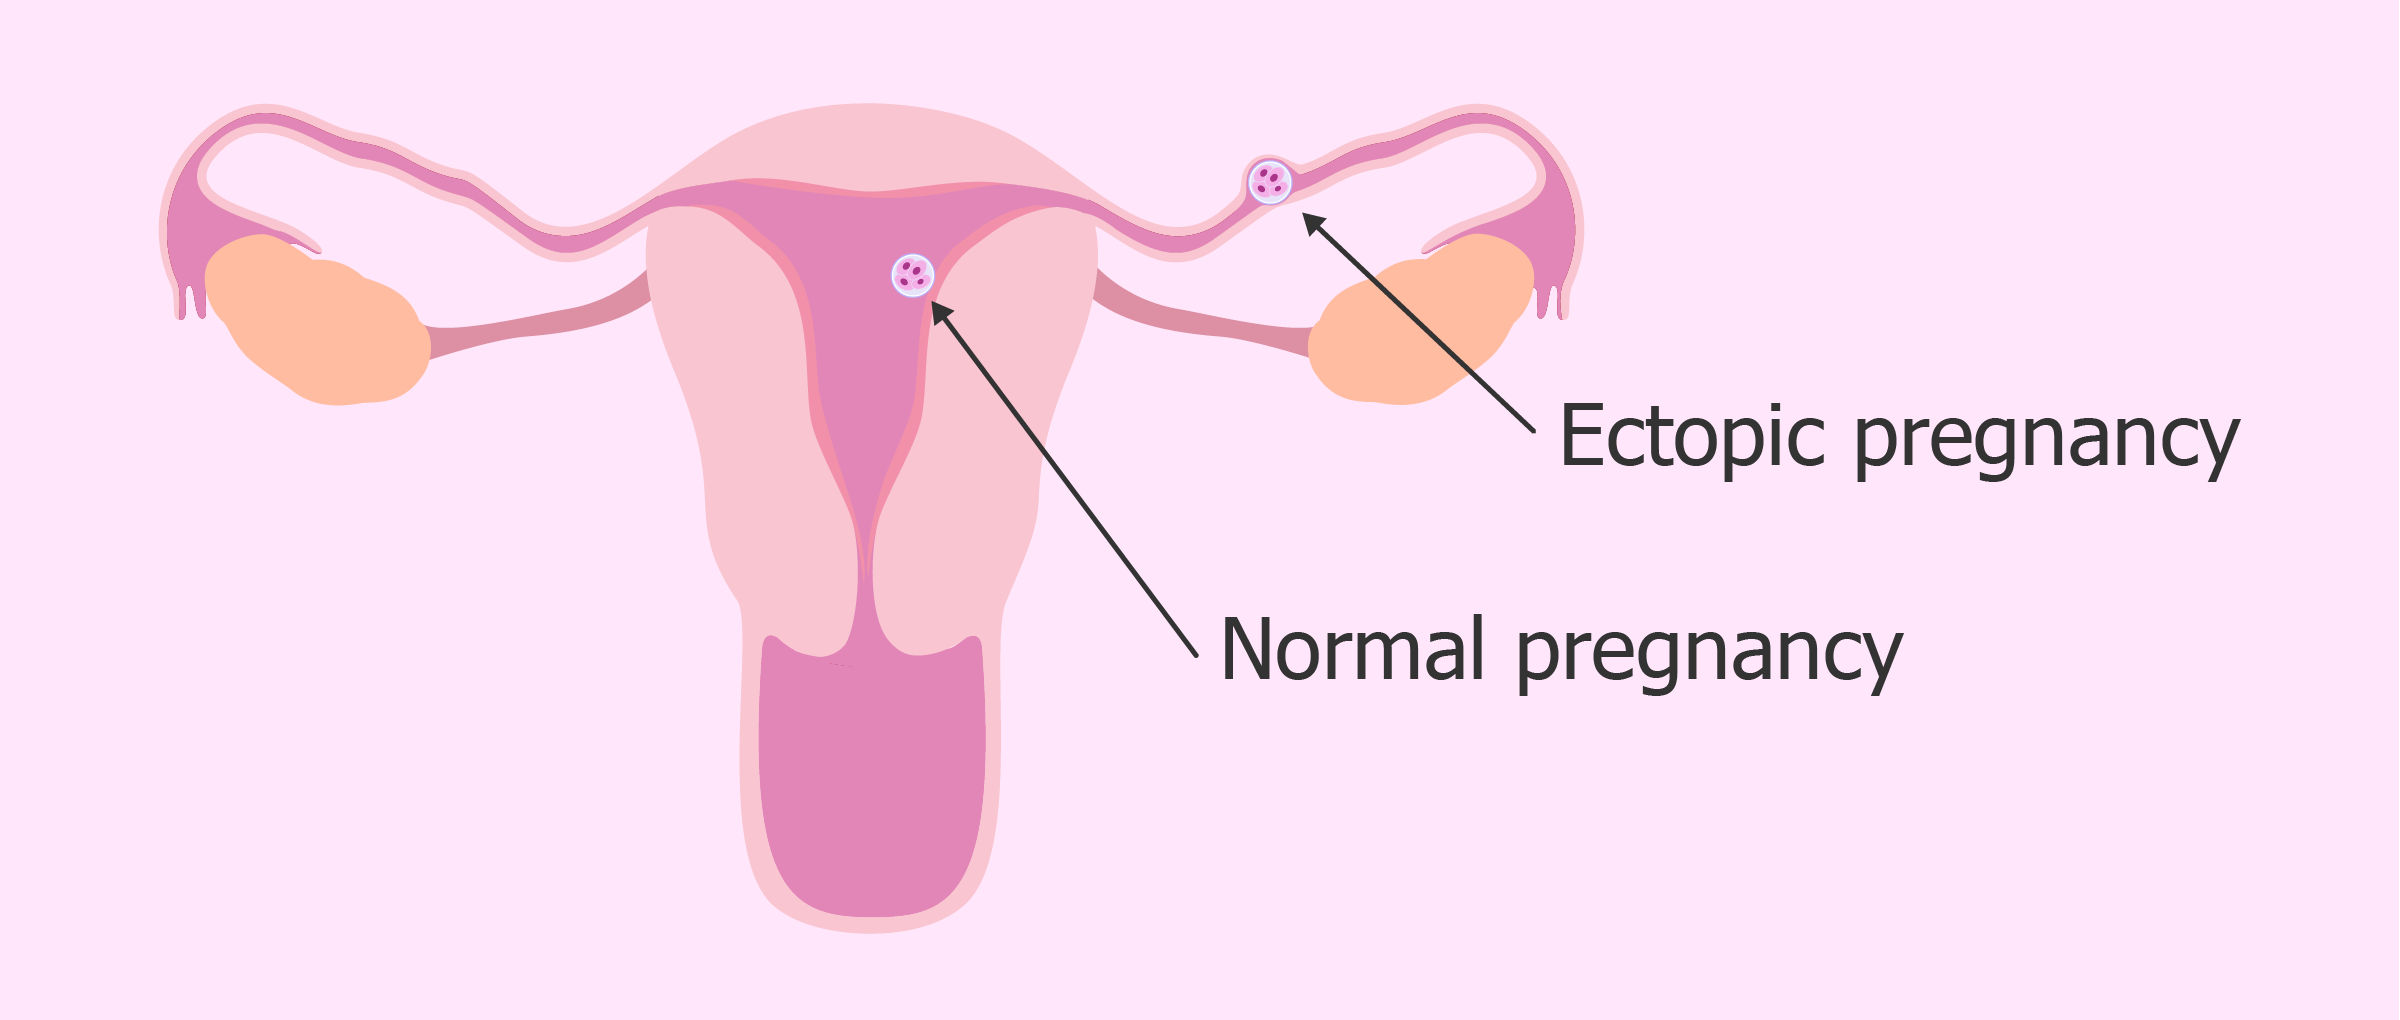 Ectopic pregnancy after embryo transfer